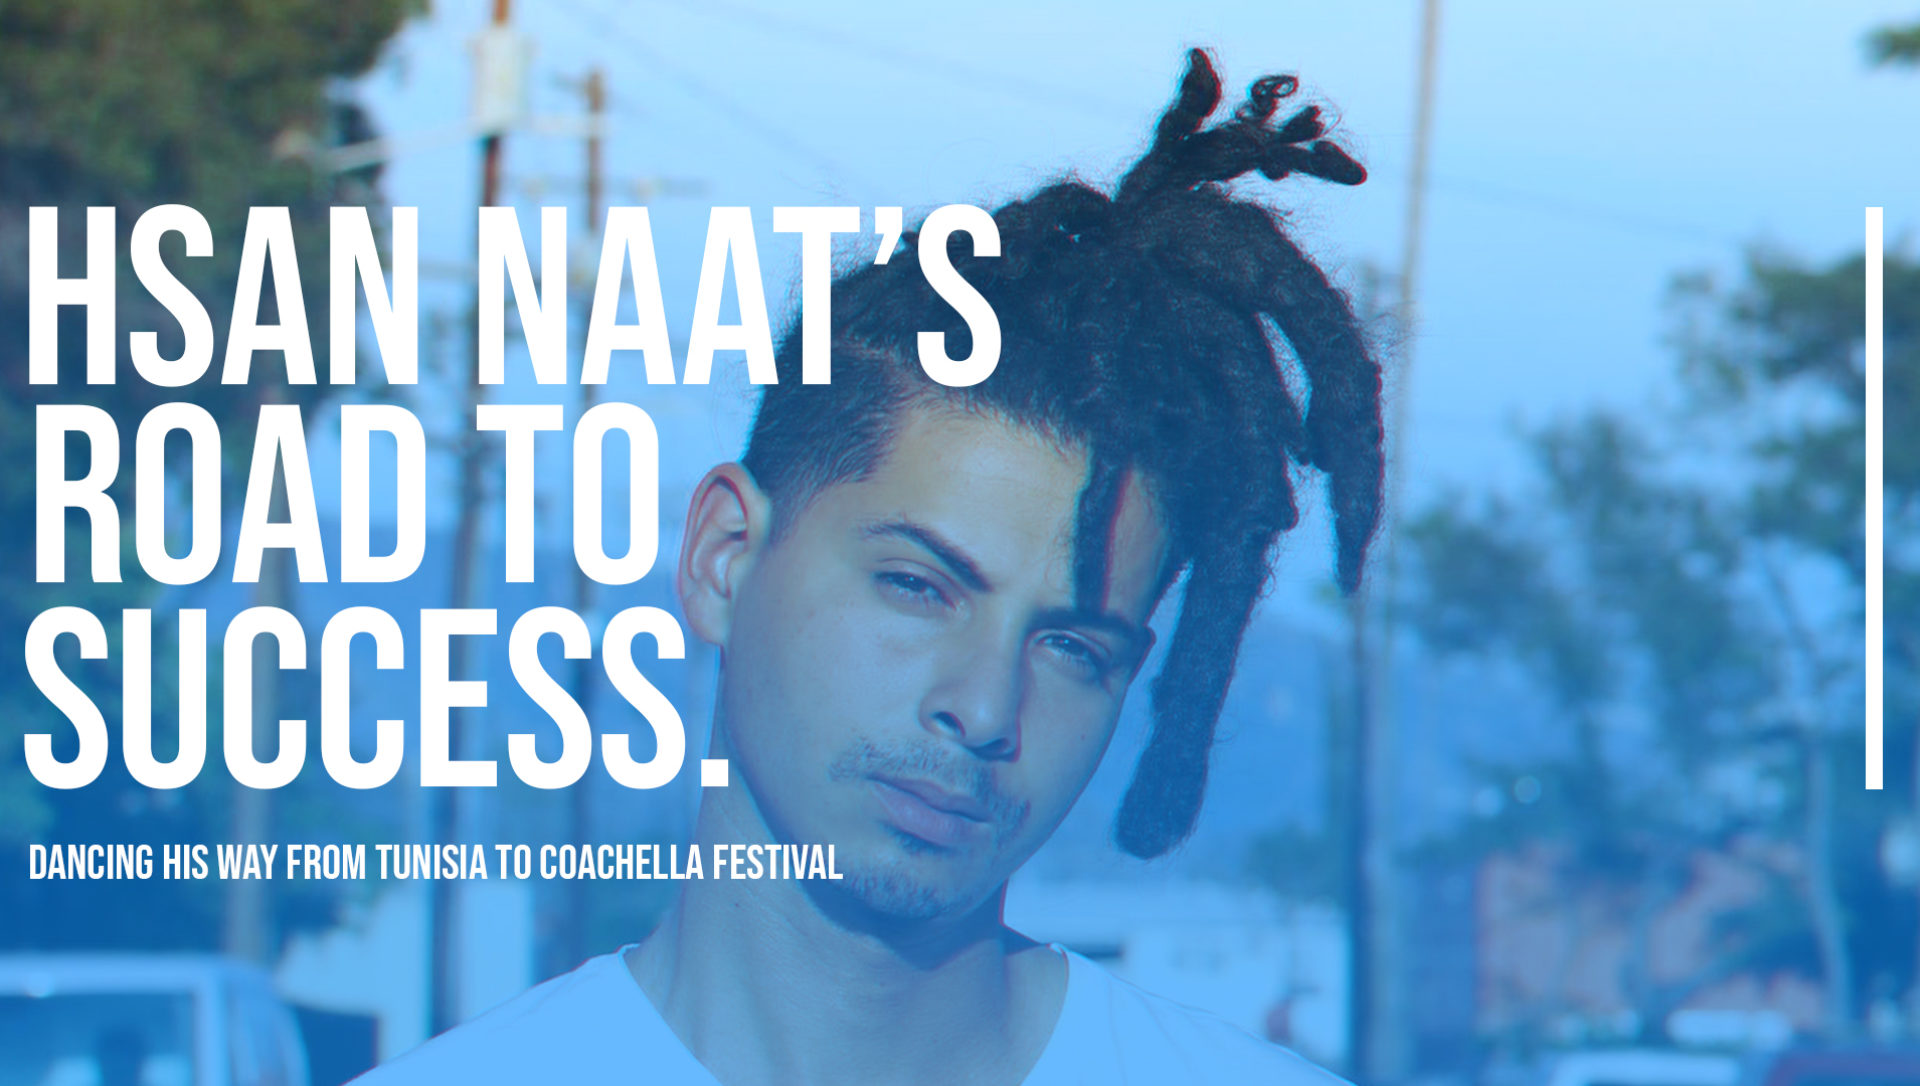 Hsan Naat's Road to Success: Dancing his way from Tunisia to Coachella Festival